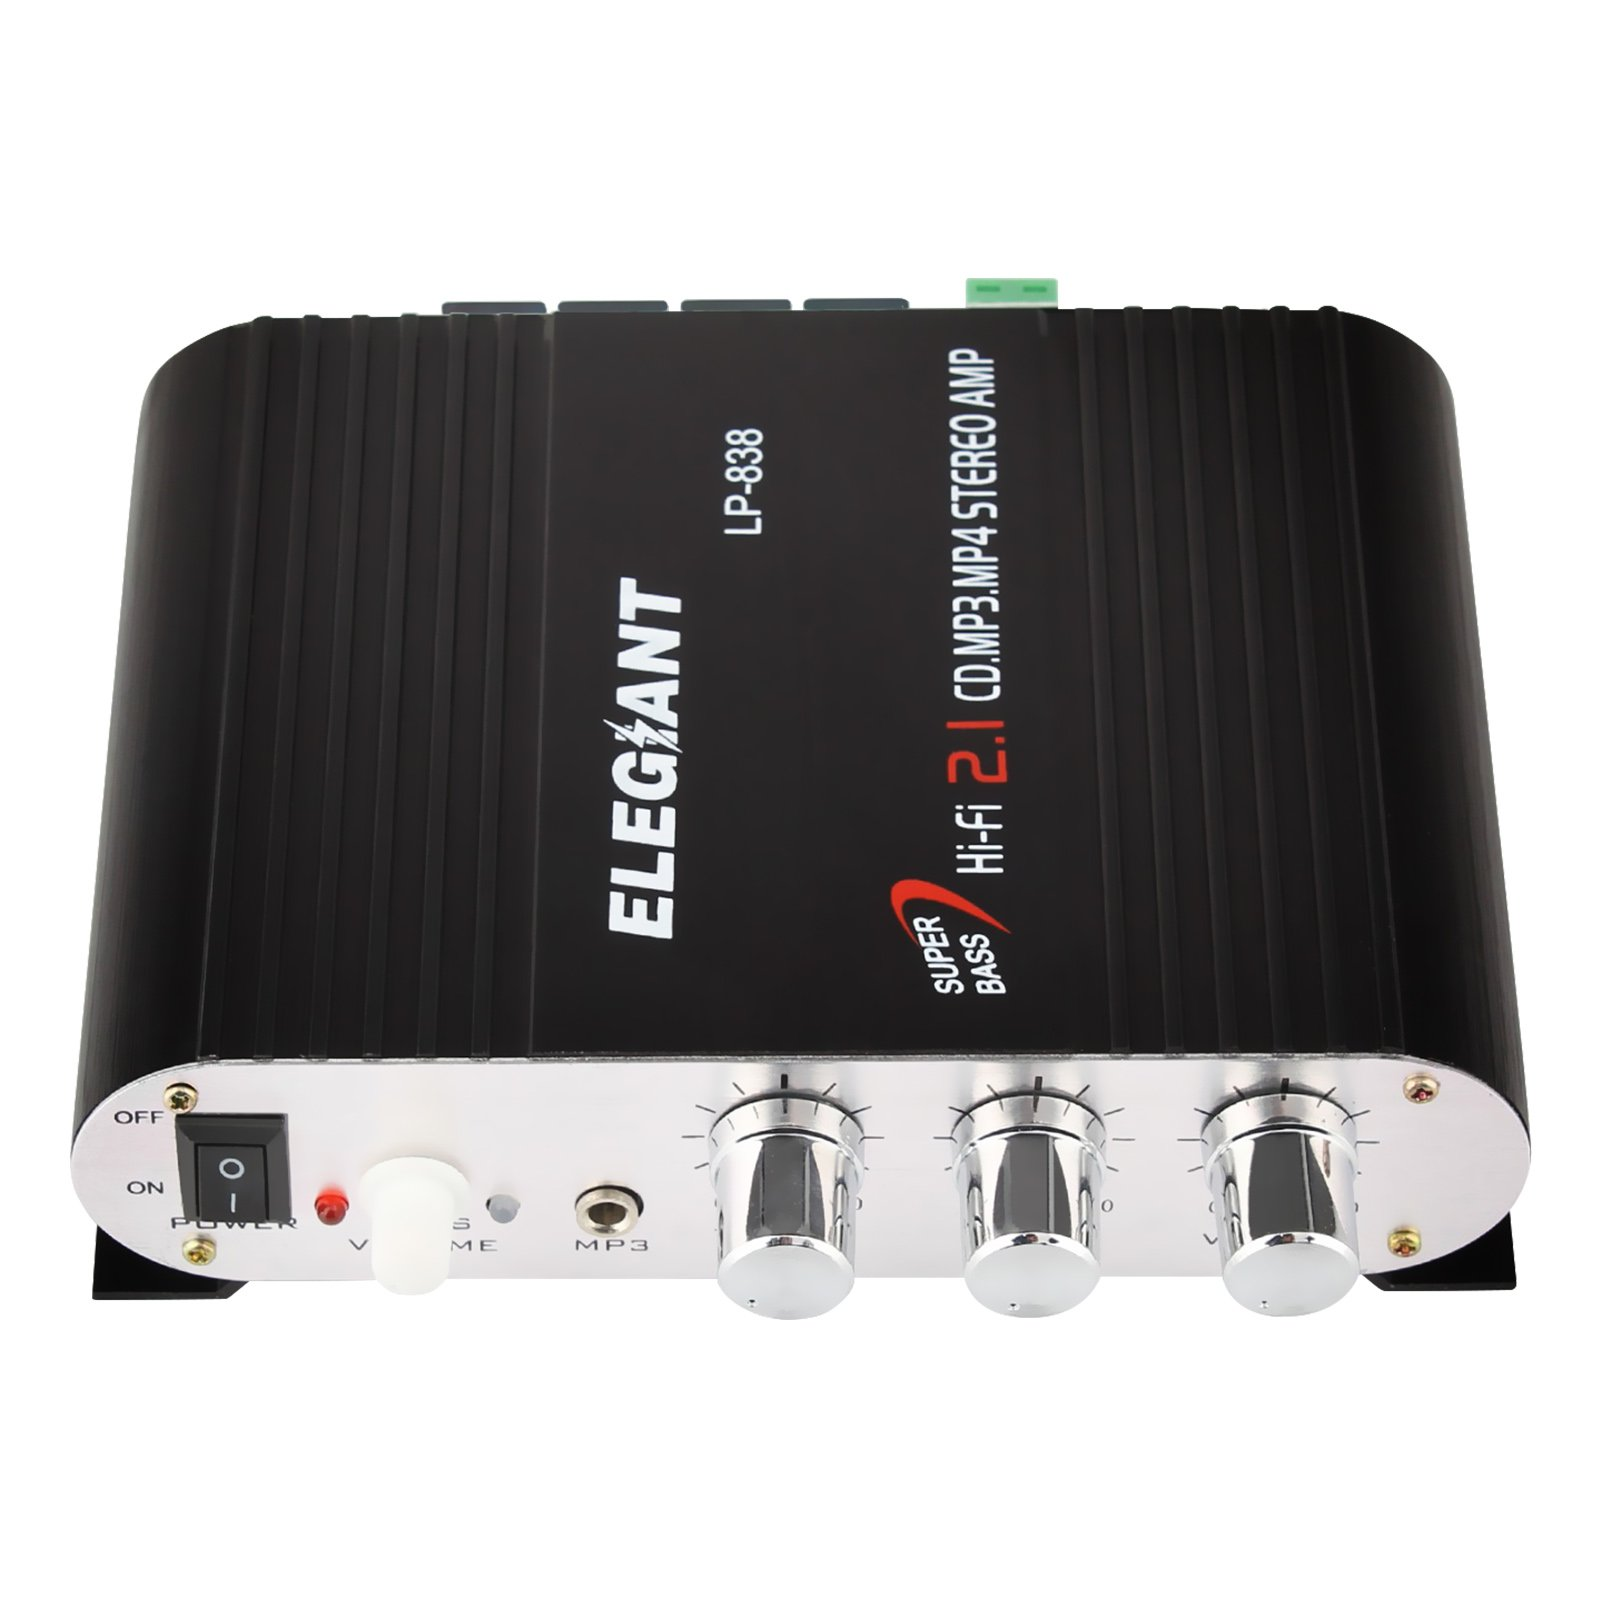 ELEGIANT 20W 12V Mini Hi-Fi Amplifier Booster Radio MP3 Stereo for Car  Motorcycle Home